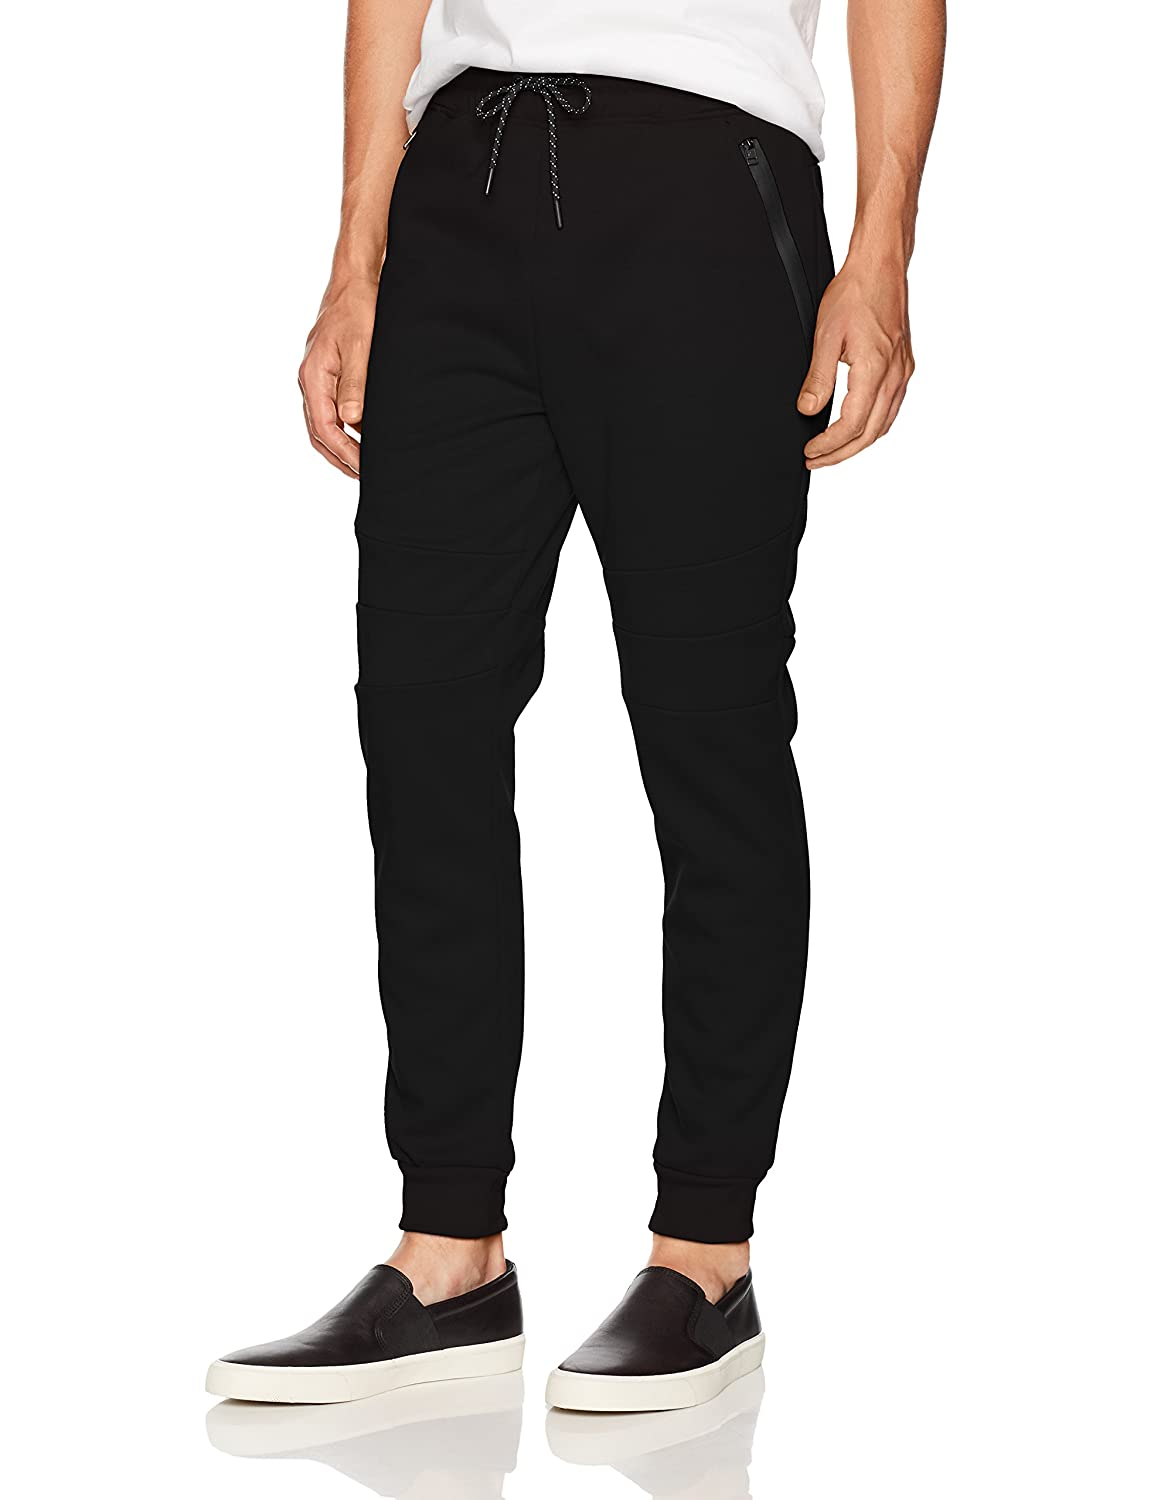 Southpole Mens Standard Tech Fleece Jogger Pants with Zipper Details